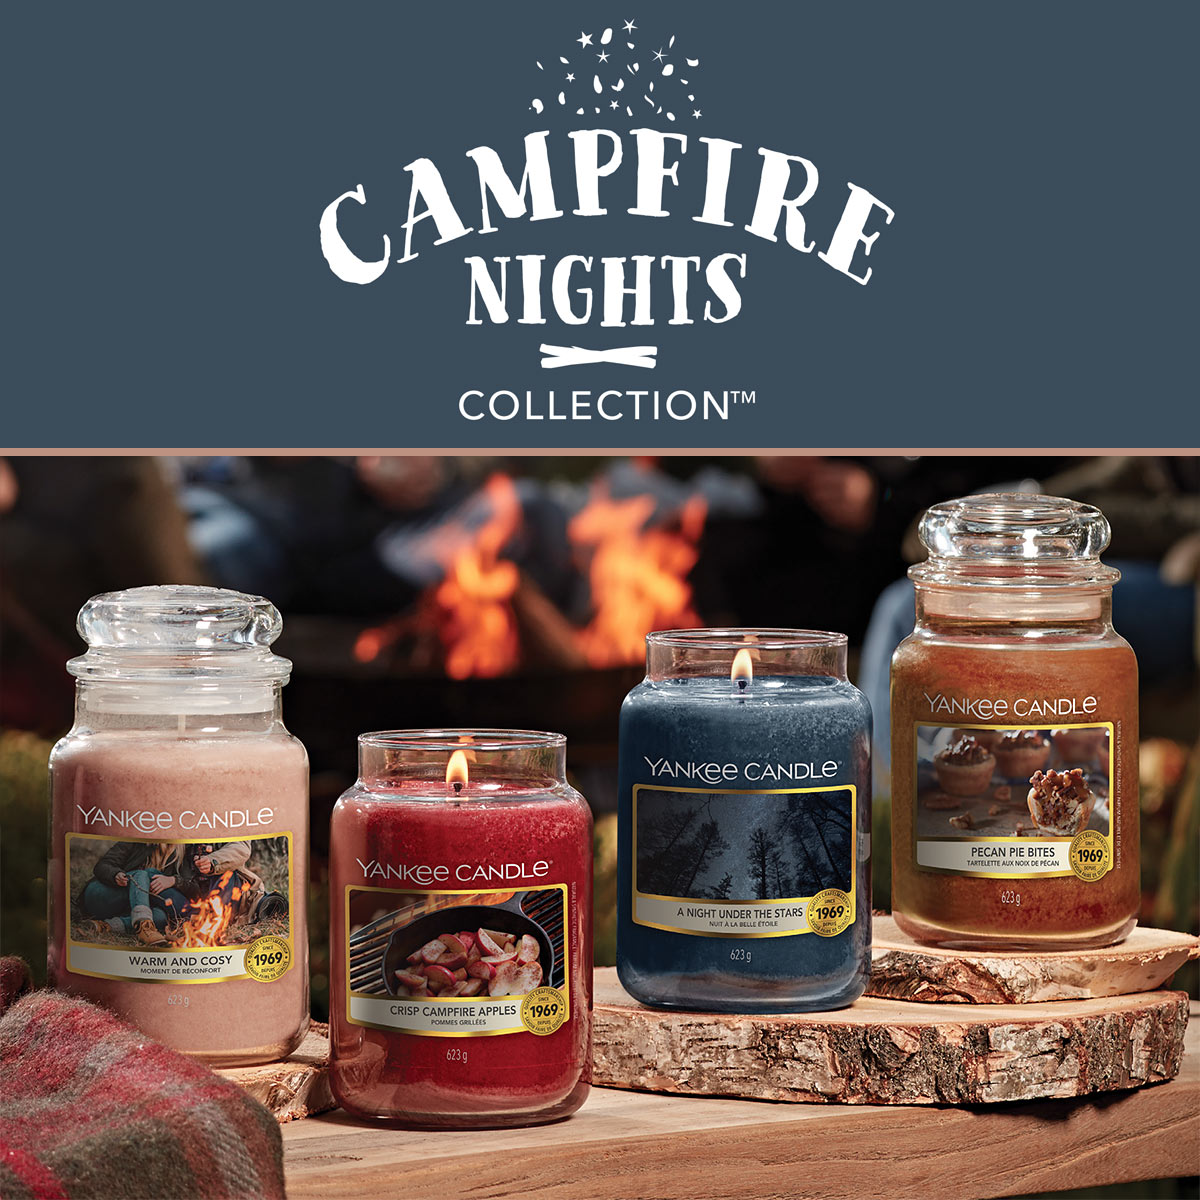 Yankee Candle Campfire Collection